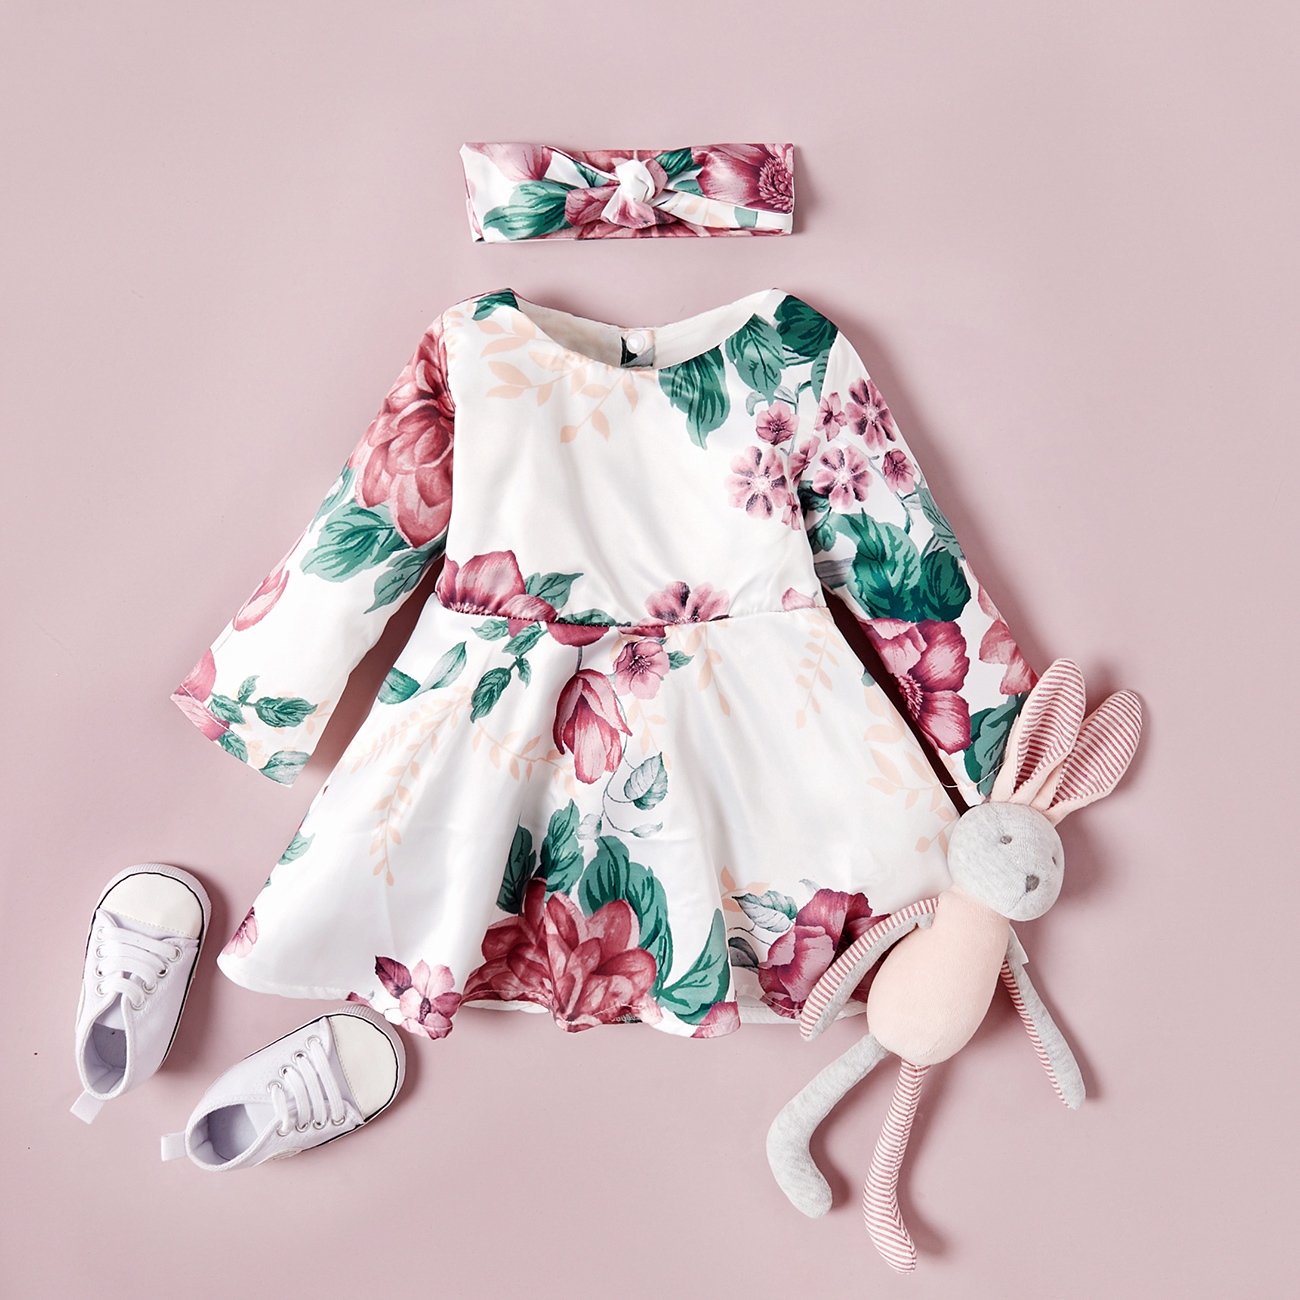 2-Piece Baby / Toddler Floral Allover Dress and Headband Set